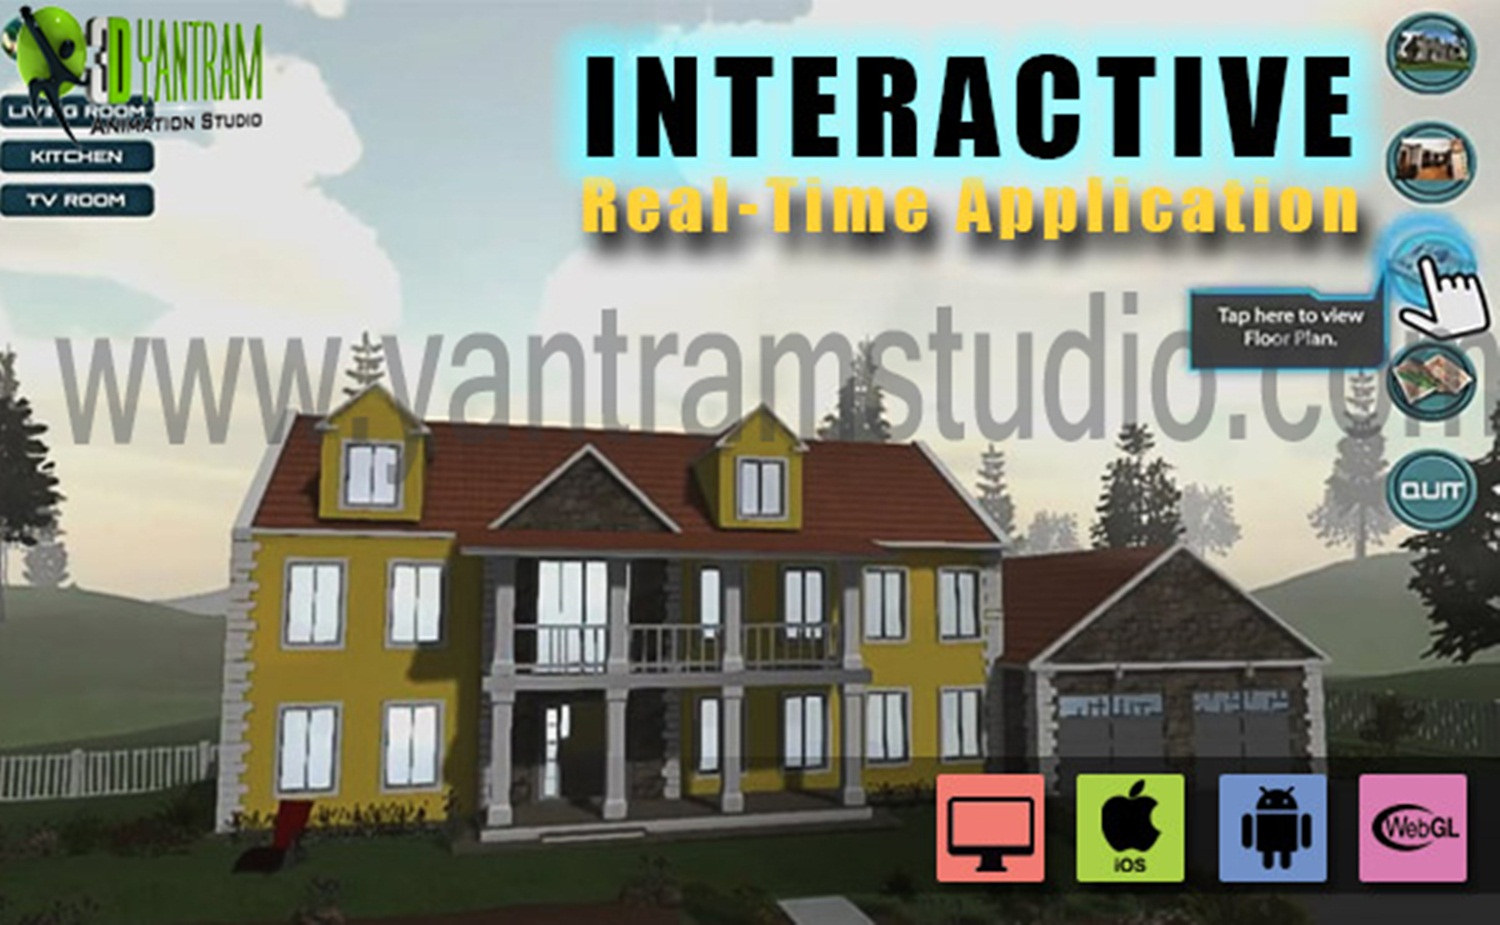 Interactive Virtual Reality By Yantram Virtual Reality Developer - Washington, USA - VR Realstate marketing-oriented website that is well designed with calls to action can literally catapult your real estate business to the next level. Ninety-two percent of home buyers use the internet. by yantramstudio